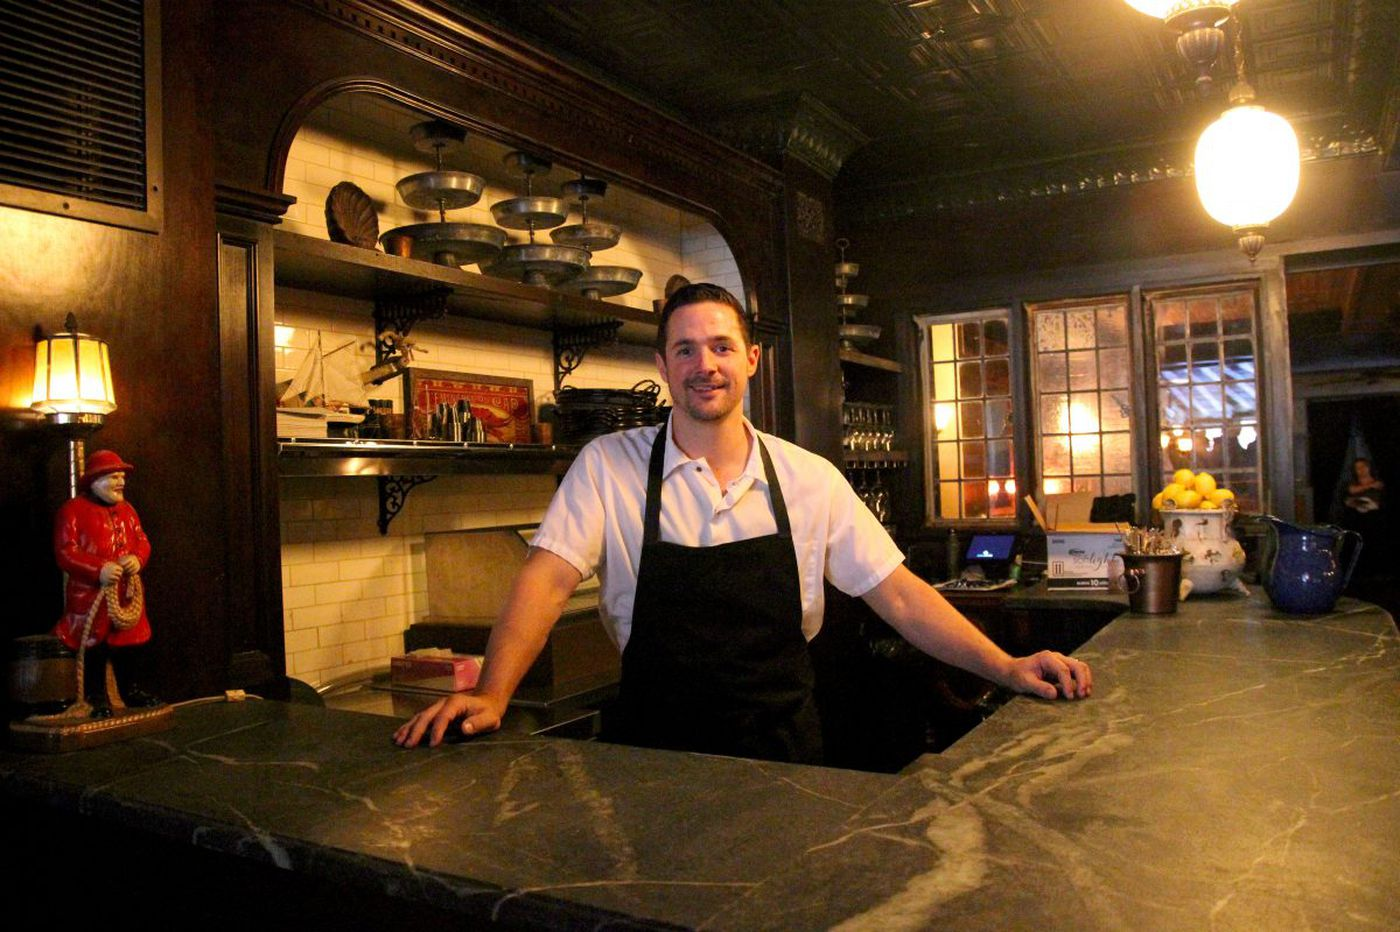 Bravo's 'Top Chef' to hold casting call at Nick Elmi's Royal Boucherie